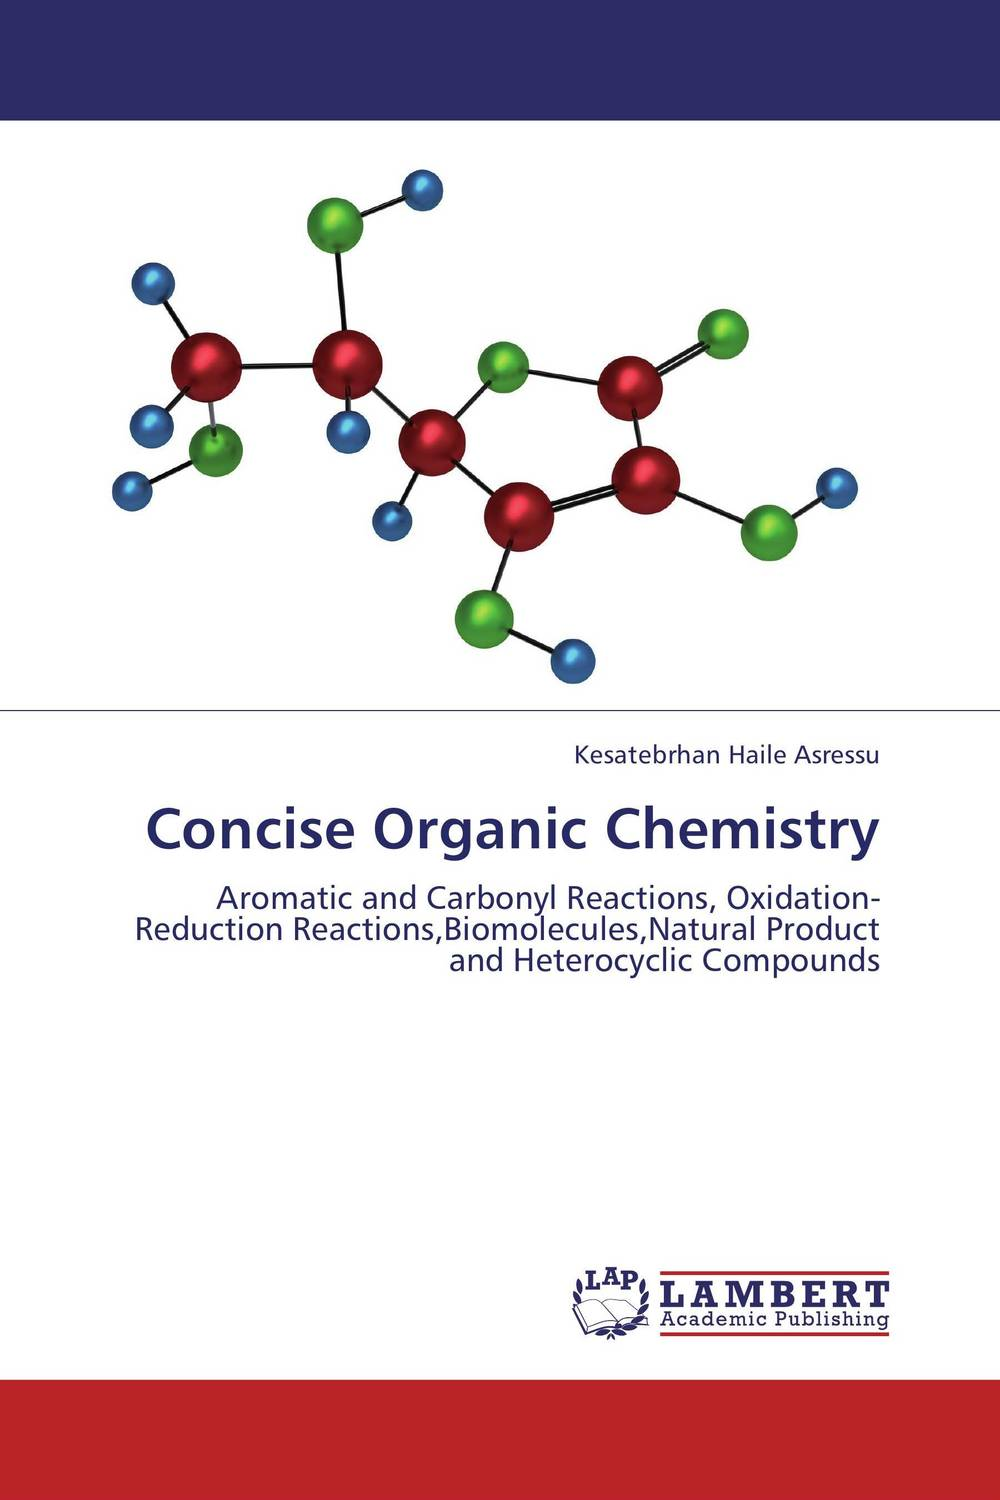 Concise Organic Chemistry dennis hall g boronic acids preparation and applications in organic synthesis medicine and materials